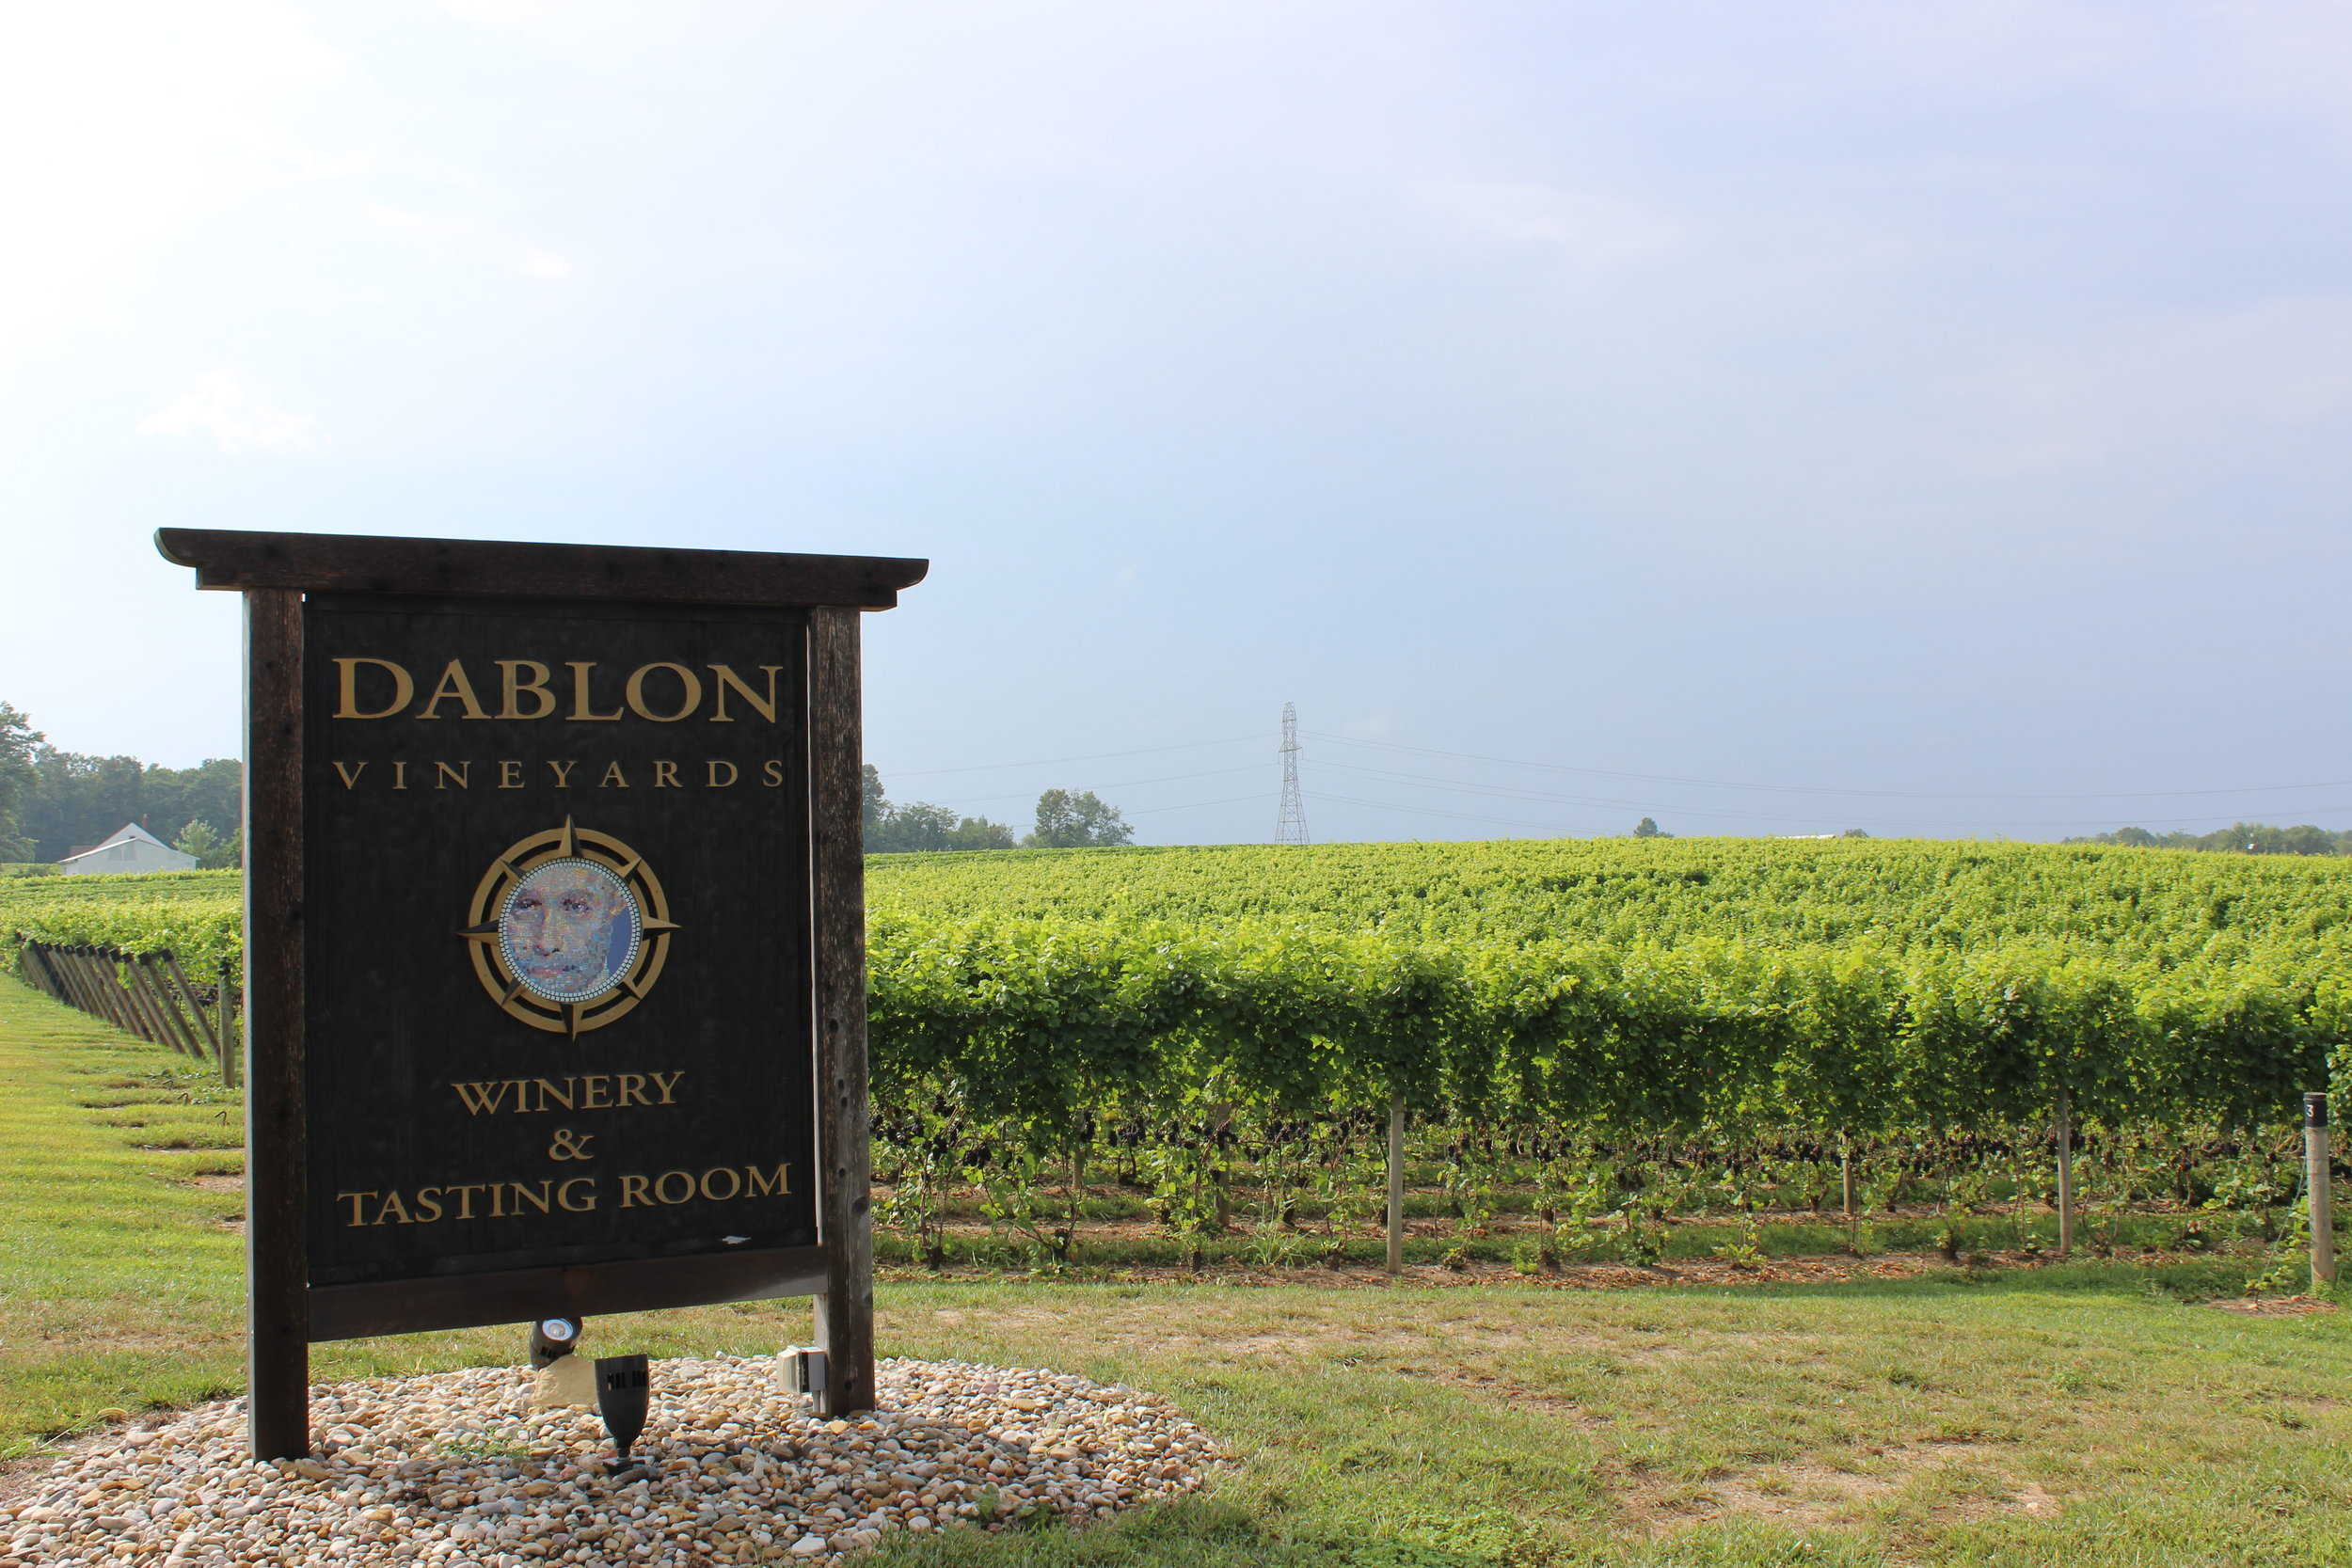 Dablon Vineyards